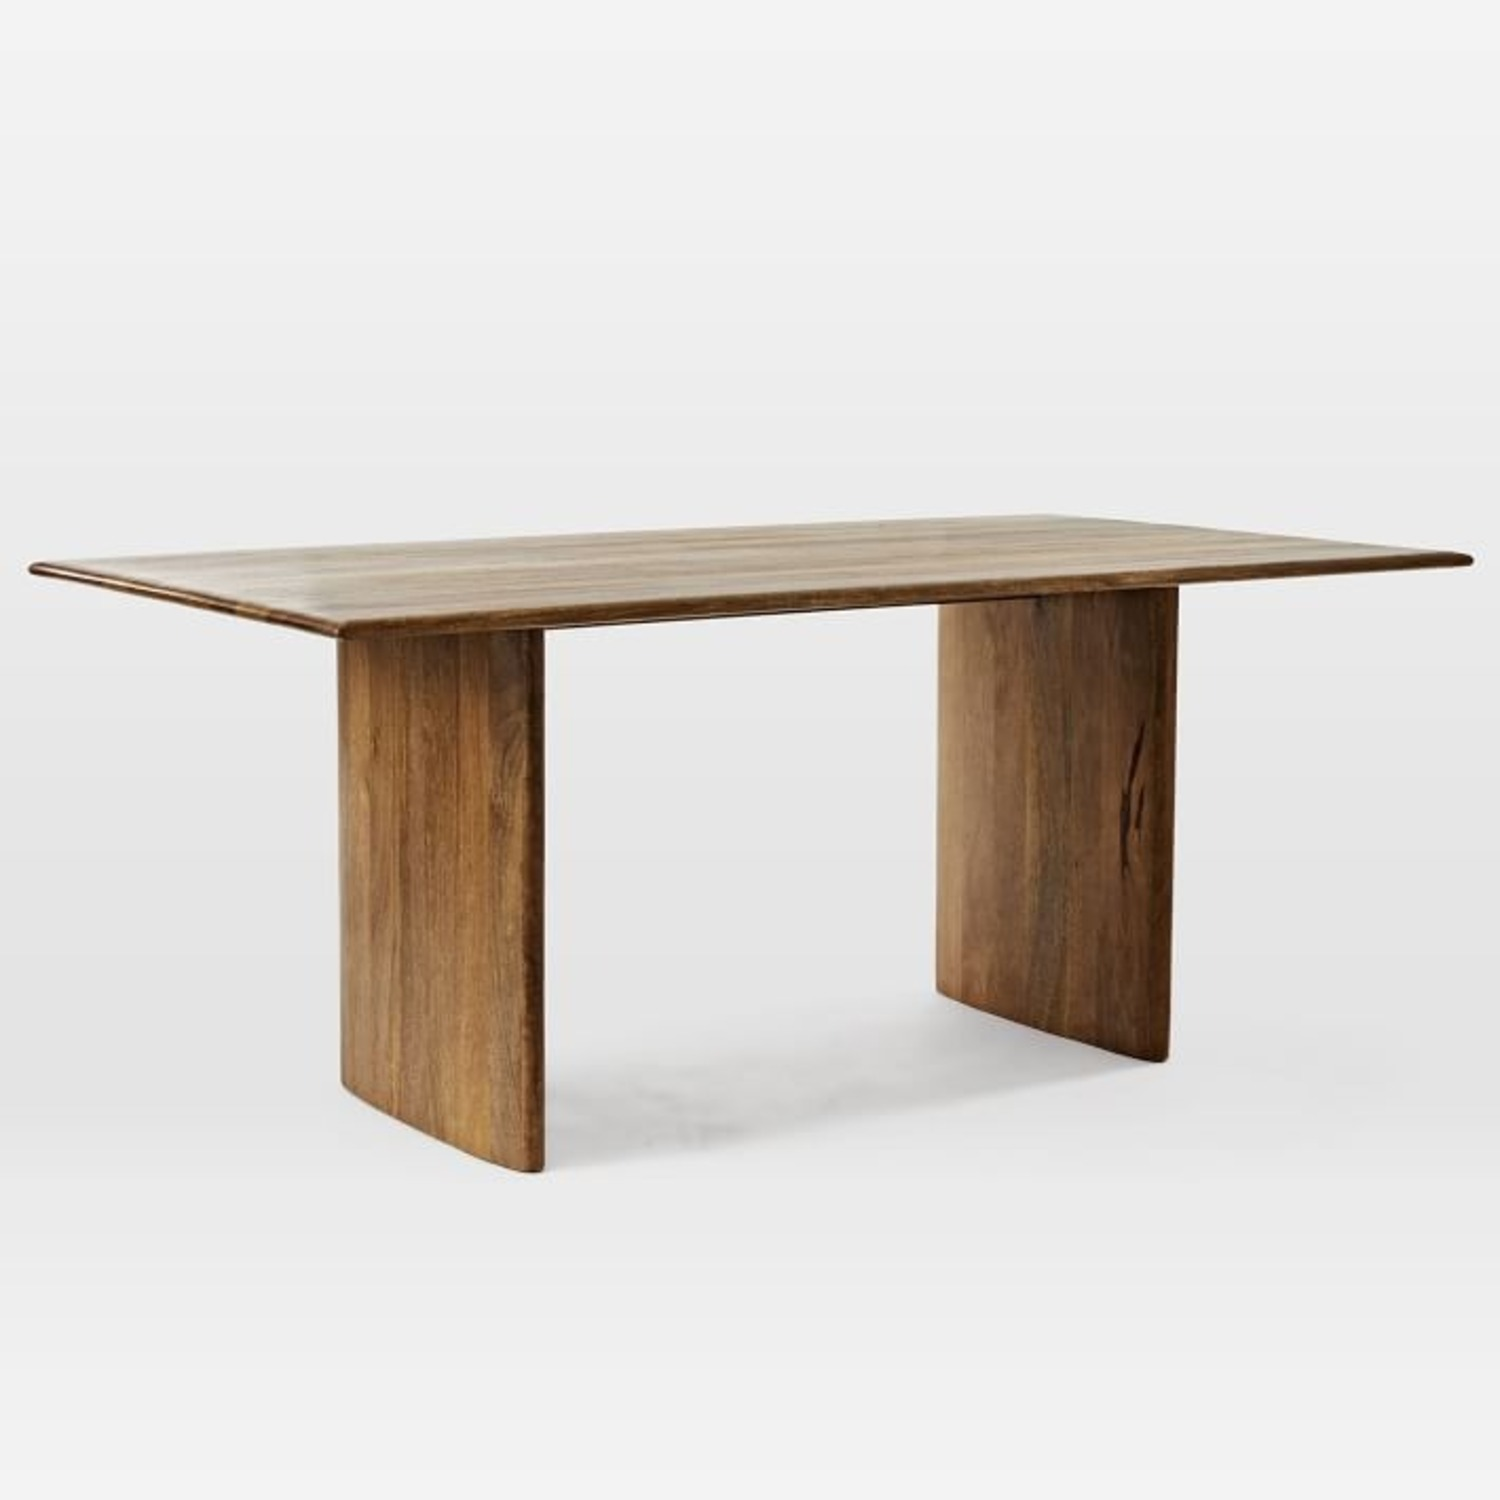 West Elm Anton Solid Wood Dining Table - image-3